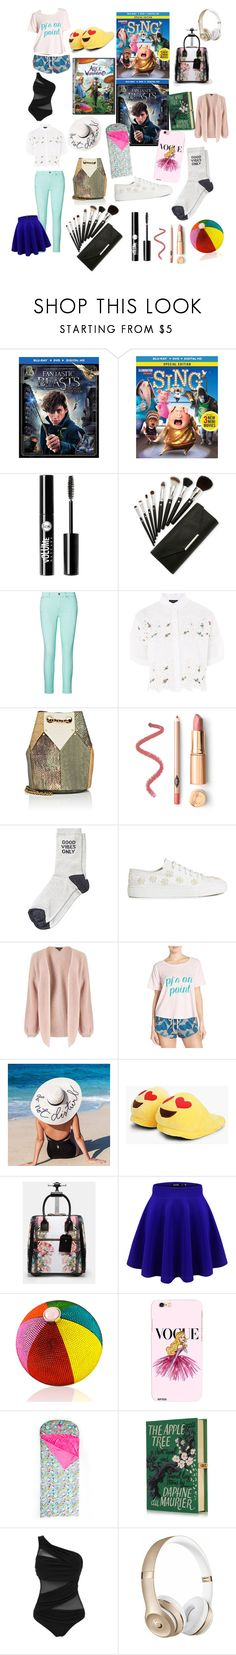 """""""Sleepover 🕗"""" by debbie-riley ❤ liked on Polyvore featuring Charlotte Russe, Ralph Lauren, Topshop, Jérôme Dreyfuss, Simone Rocha, Miss Selfridge, Honeydew Intimates, Boohoo, Ted Baker and Judith Leiber"""